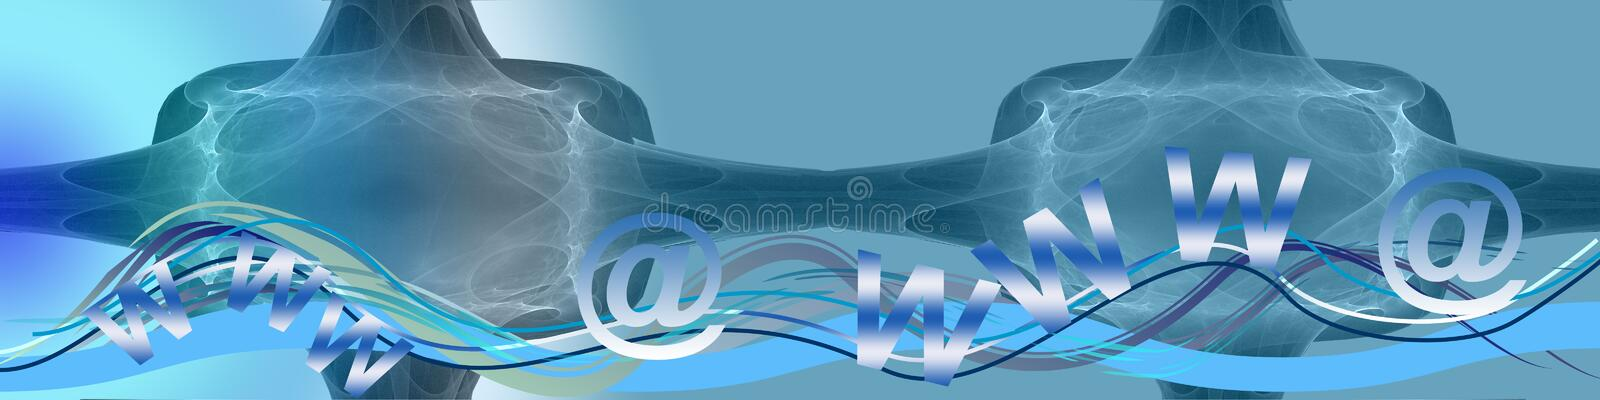 Waves, www and @. This banner has a creative abstract background with waves.The www's and @'s are situated on the wave trac vector illustration